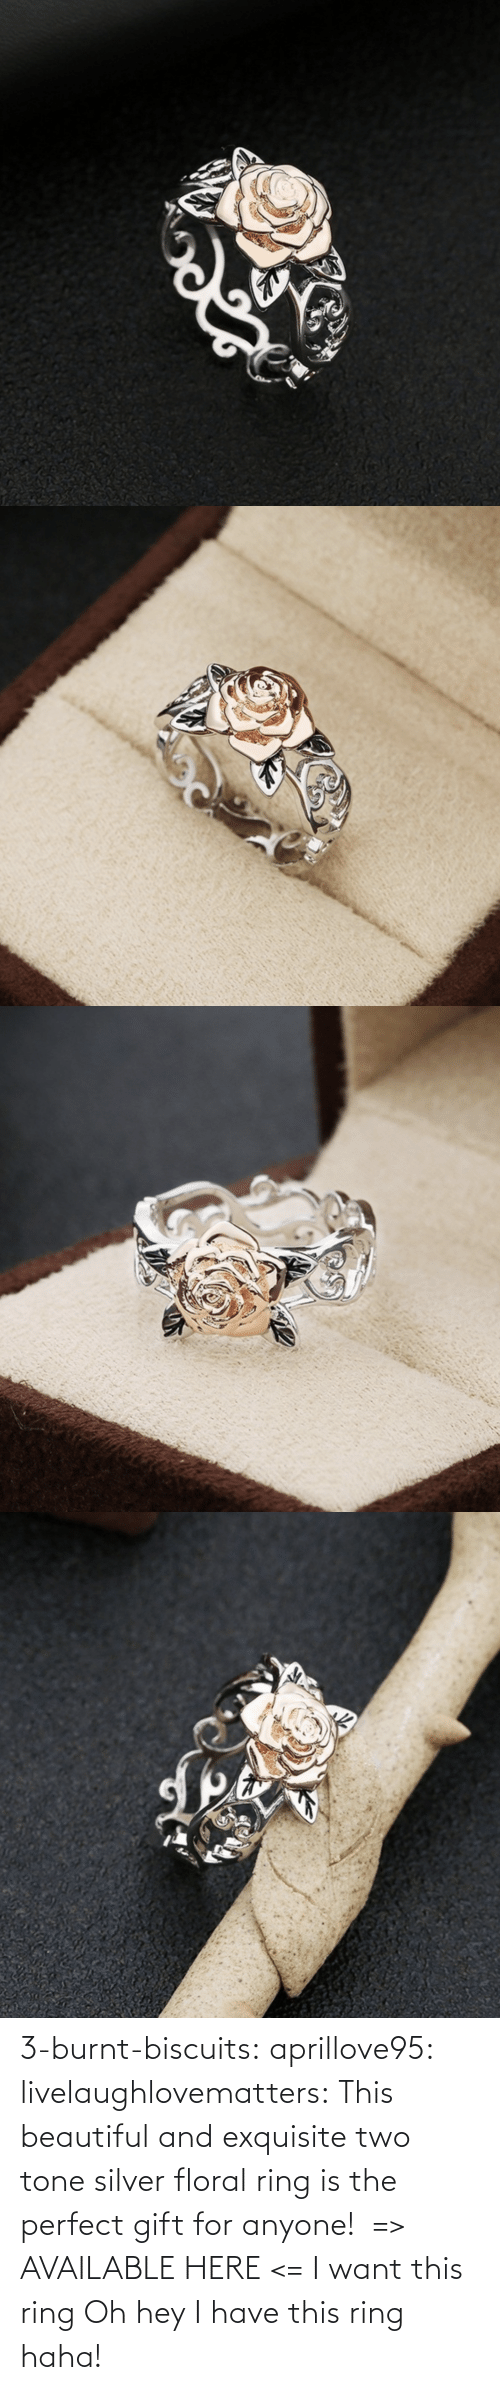 hey: 3-burnt-biscuits: aprillove95:  livelaughlovematters:  This beautiful and exquisite two tone silver floral ring is the perfect gift for anyone!  => AVAILABLE HERE <=    I want this ring     Oh hey I have this ring haha!